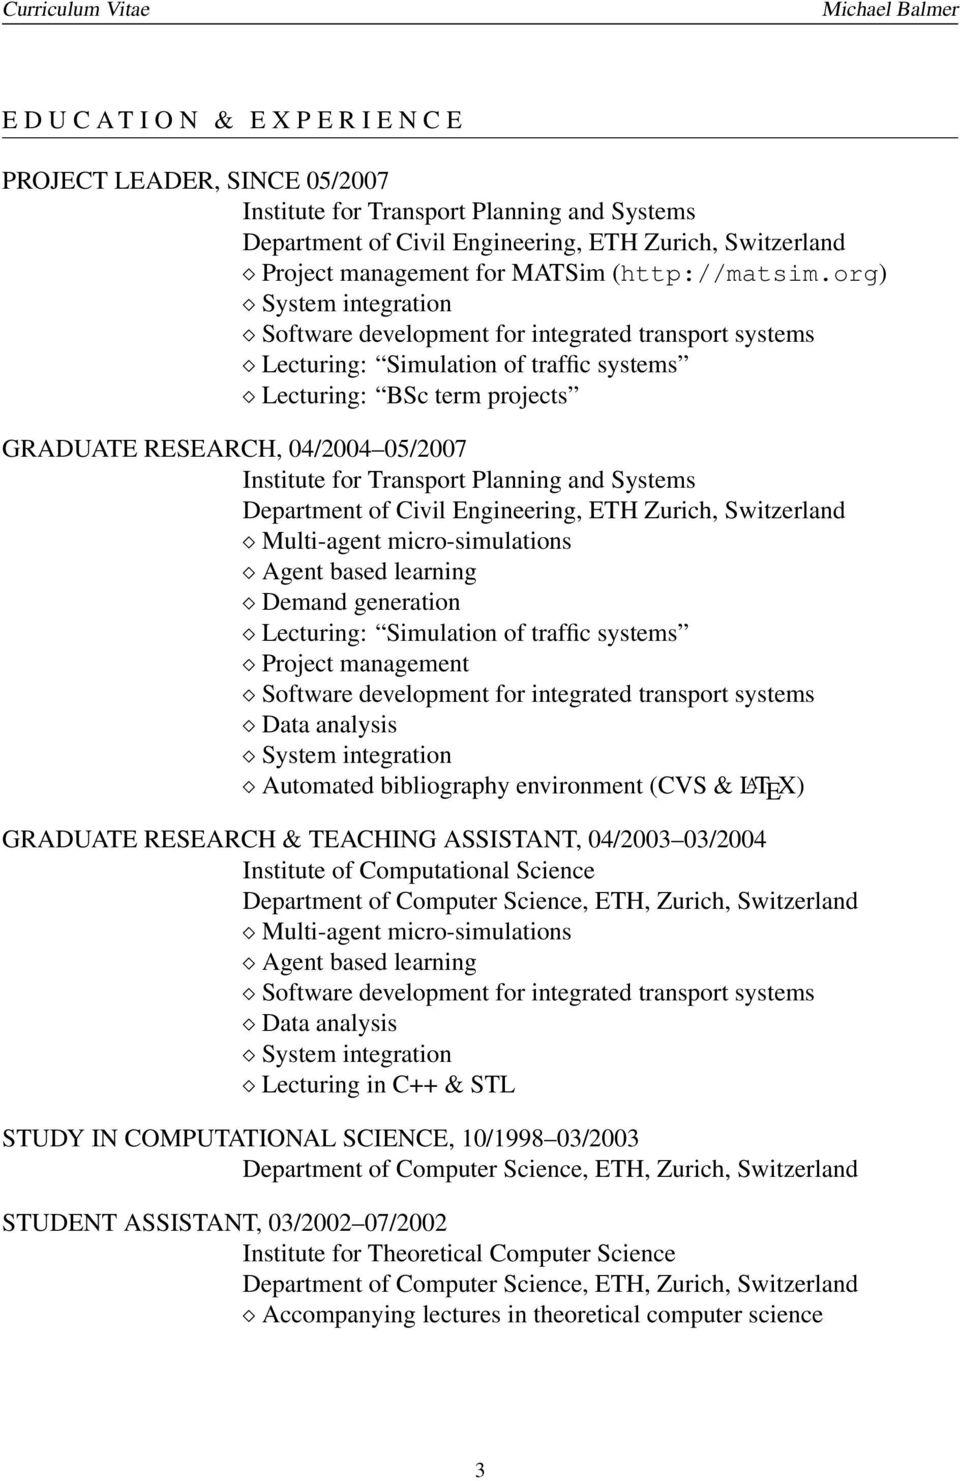 org) System integration Software development for integrated transport systems Lecturing: Simulation of traffic systems Lecturing: BSc term projects GRADUATE RESEARCH, 04/2004 05/2007 Institute for